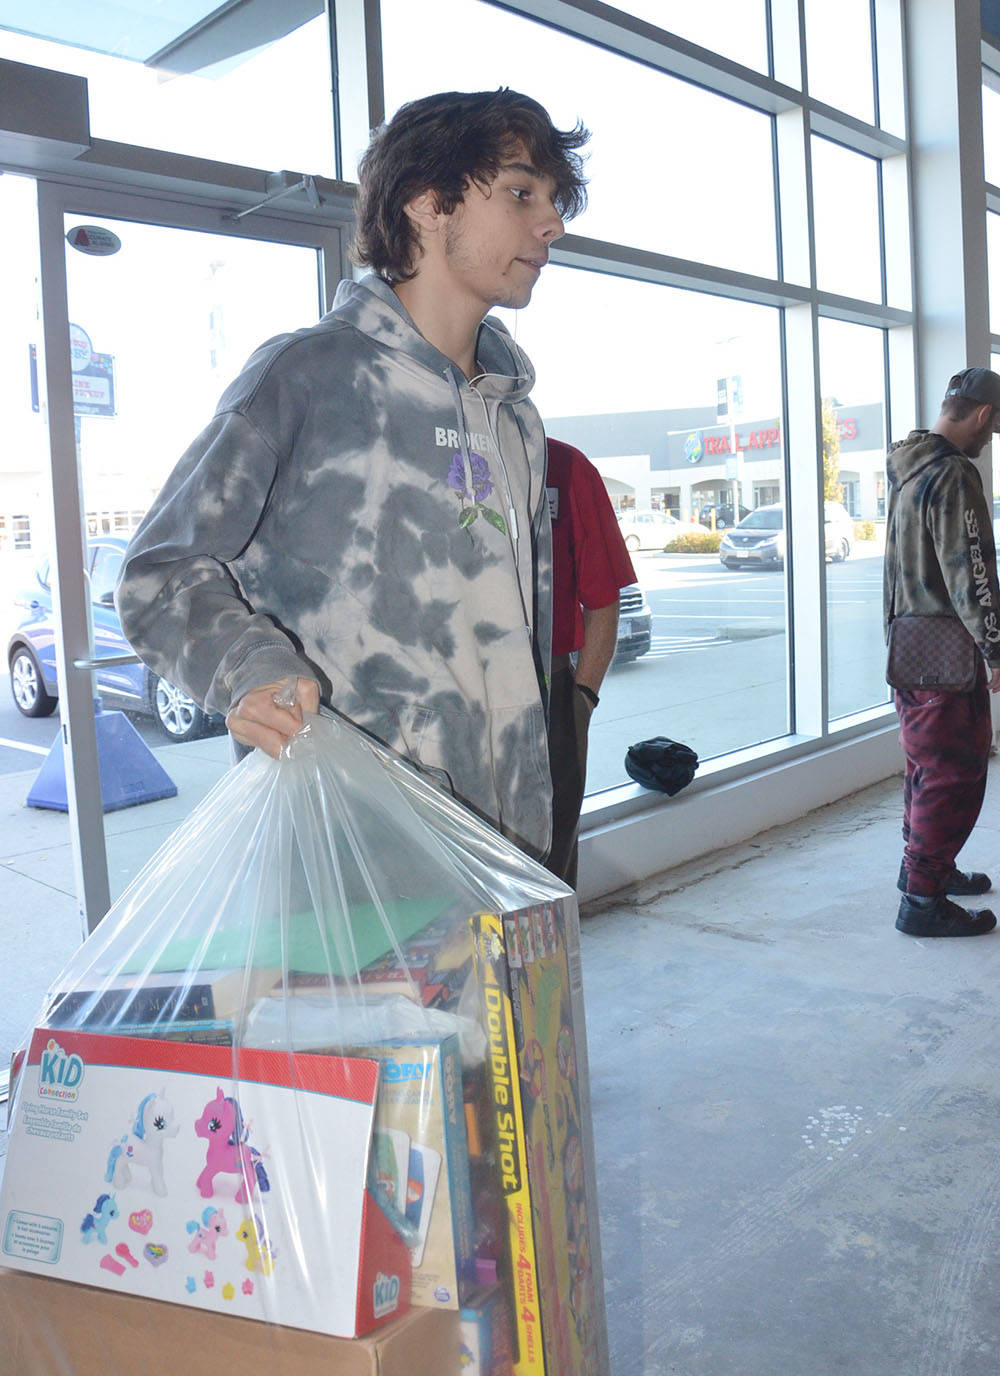 Anthony Wideman and seven other students from Vanguard helped set up the Langley Christmas Bureau which opens for the season on Nov. 4. (Heather Colpitts/Langley Advance Times)